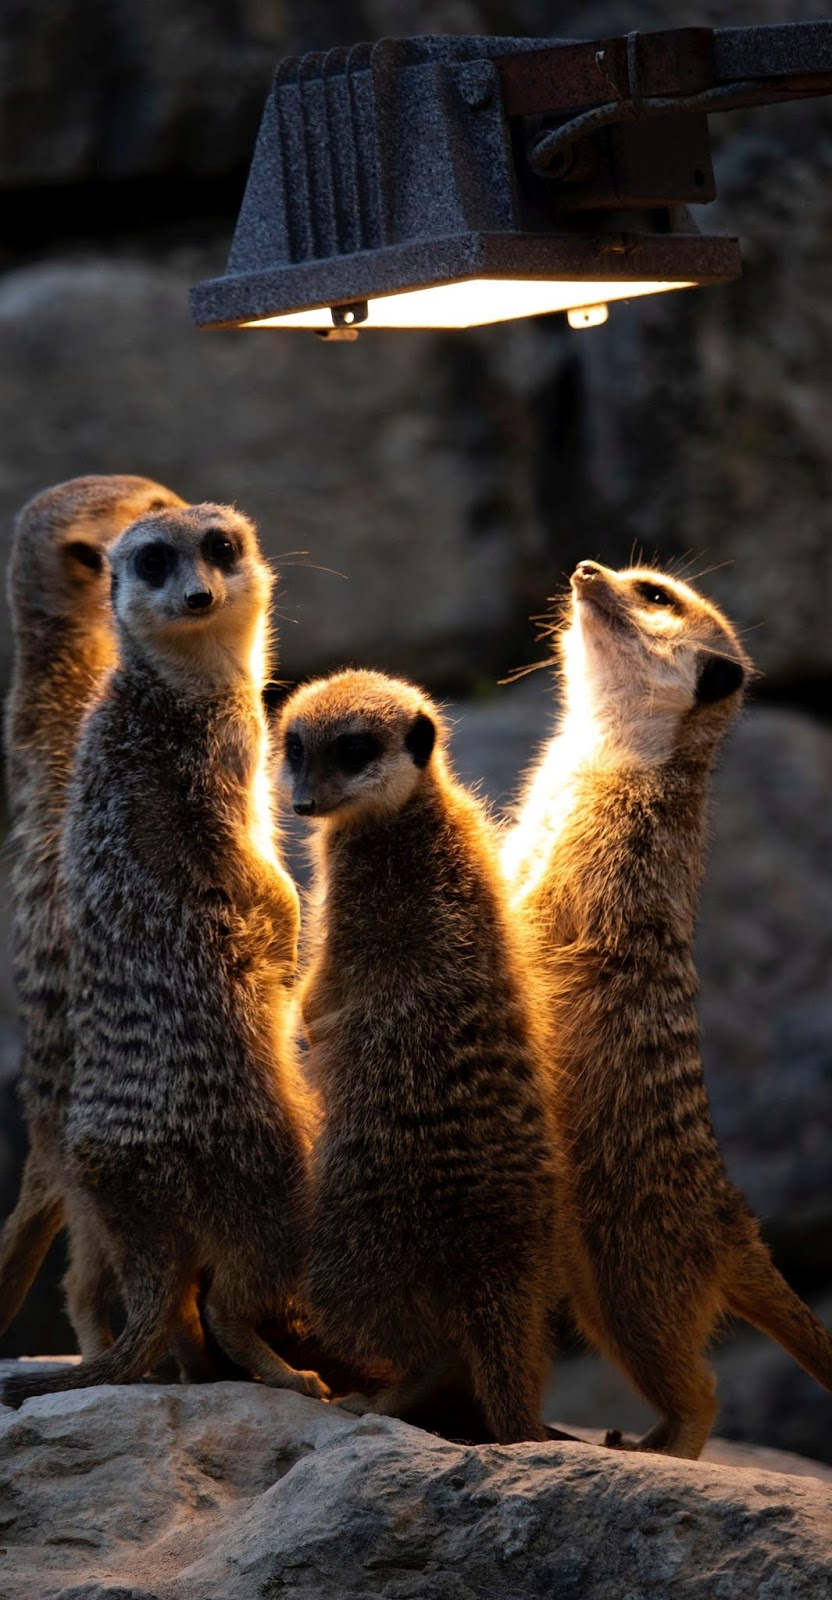 Meerkats curious about the light.